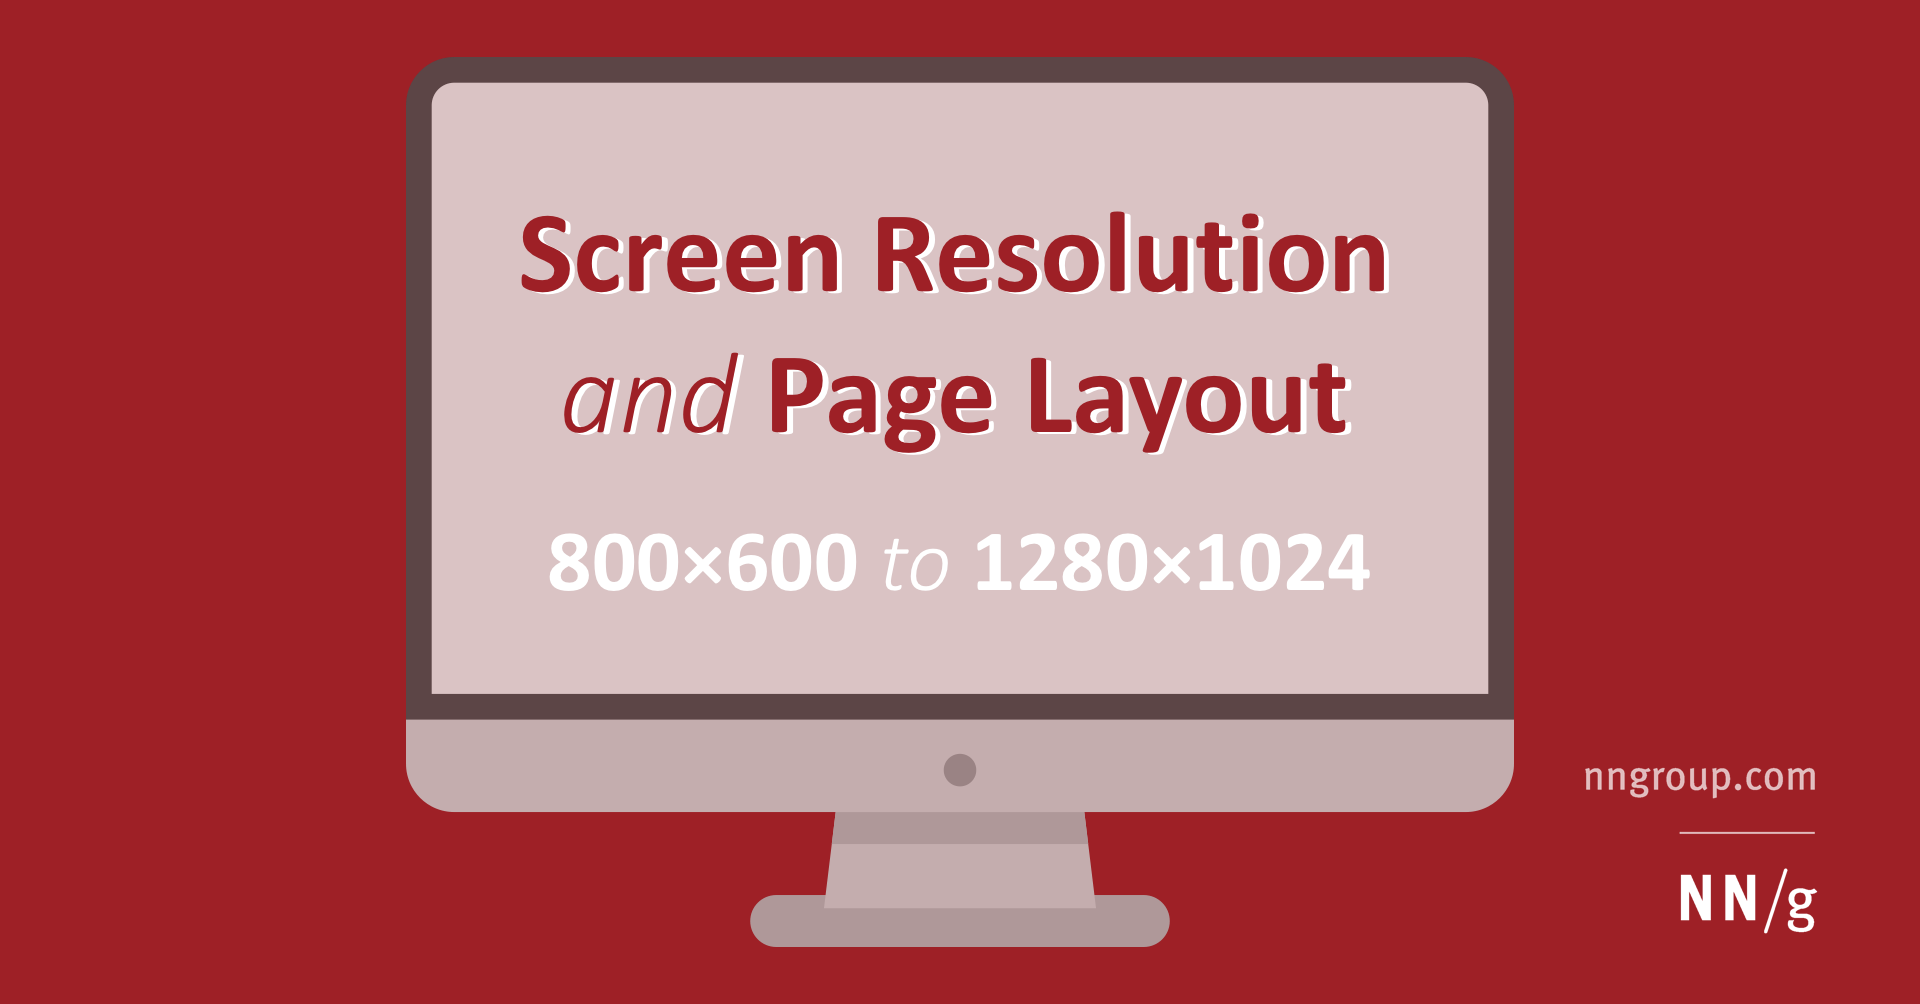 screen resolution and page layout